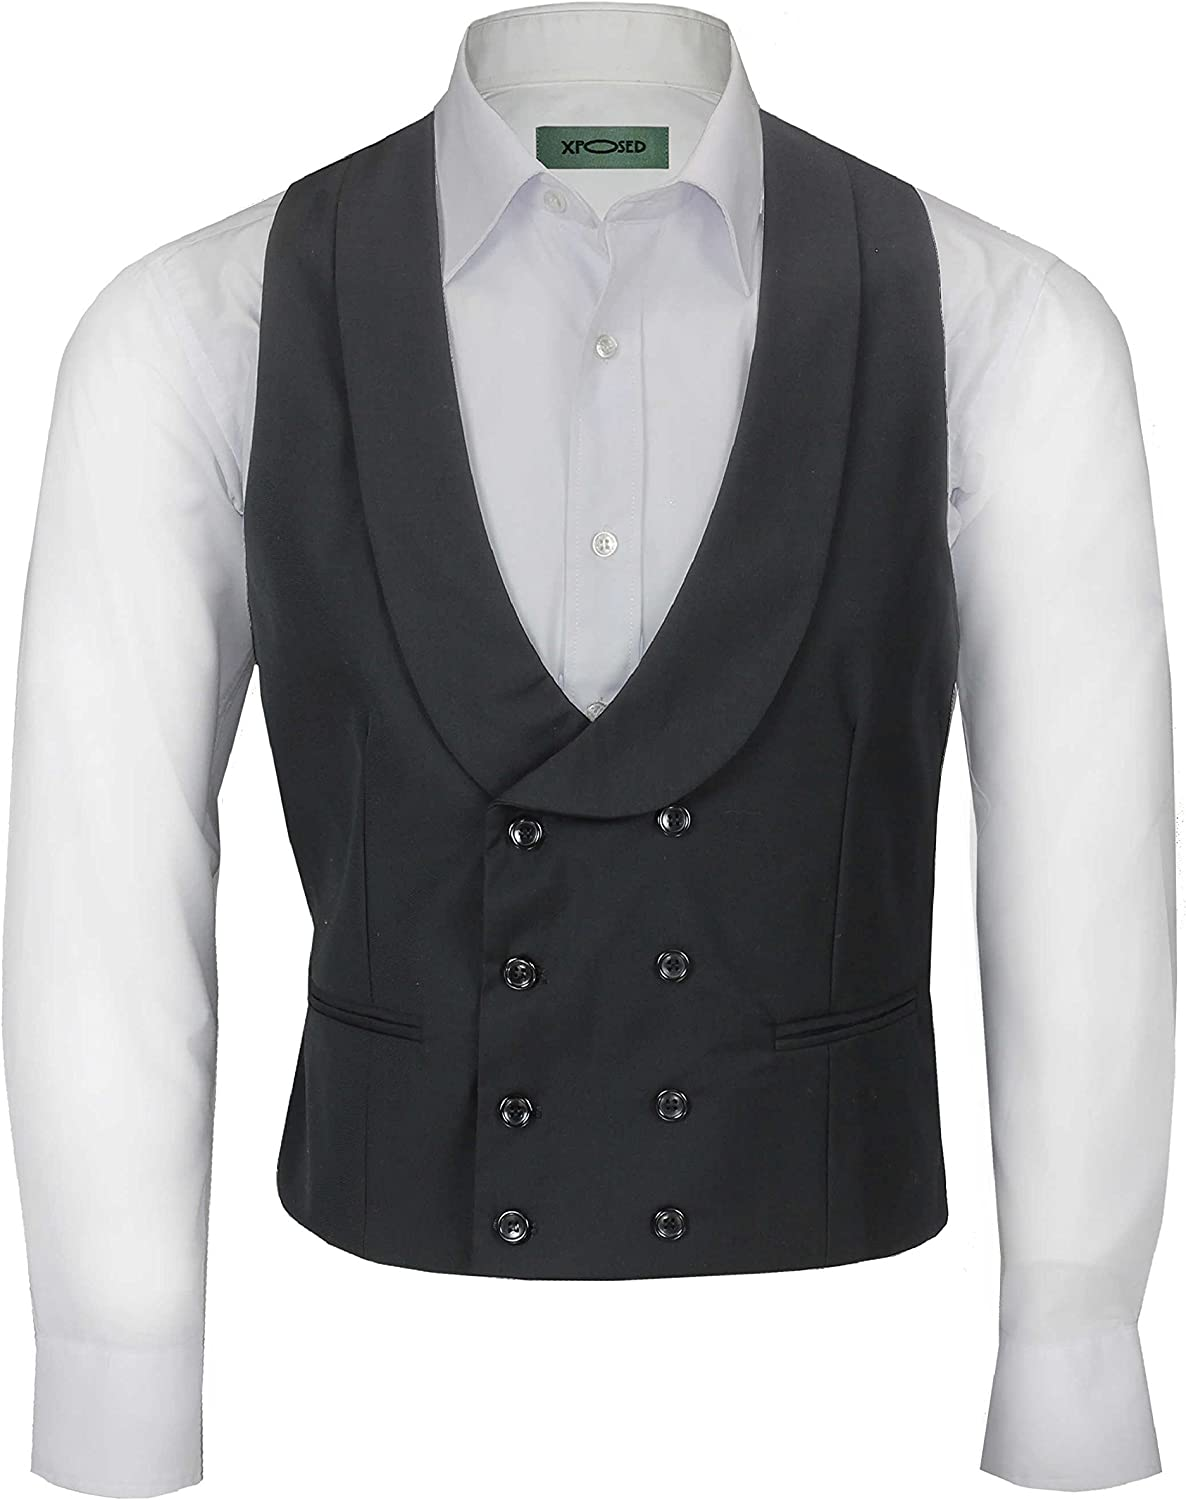 1920s Men's Fashion UK | Peaky Blinders Clothing Xposed Men's Vintage Double Breasted Shawl Lapel Waistcoat Tailored Fit Smart Wedding Dress Tux Vest £31.99 AT vintagedancer.com